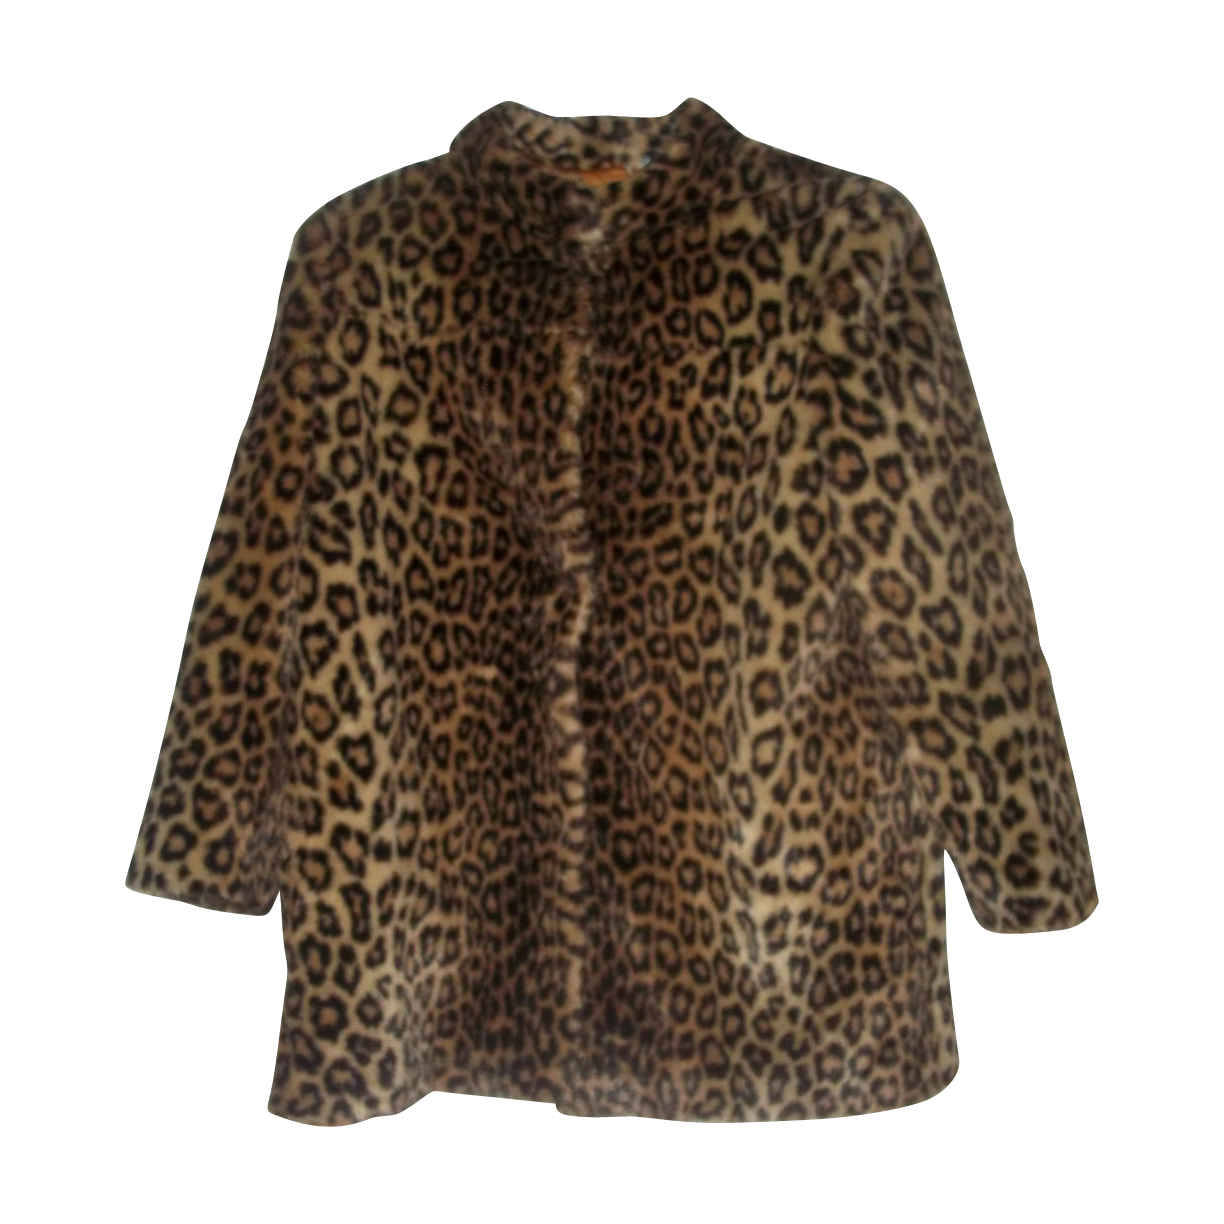 Ladies Vintage Faux Leopard Print Short Coat Jacket